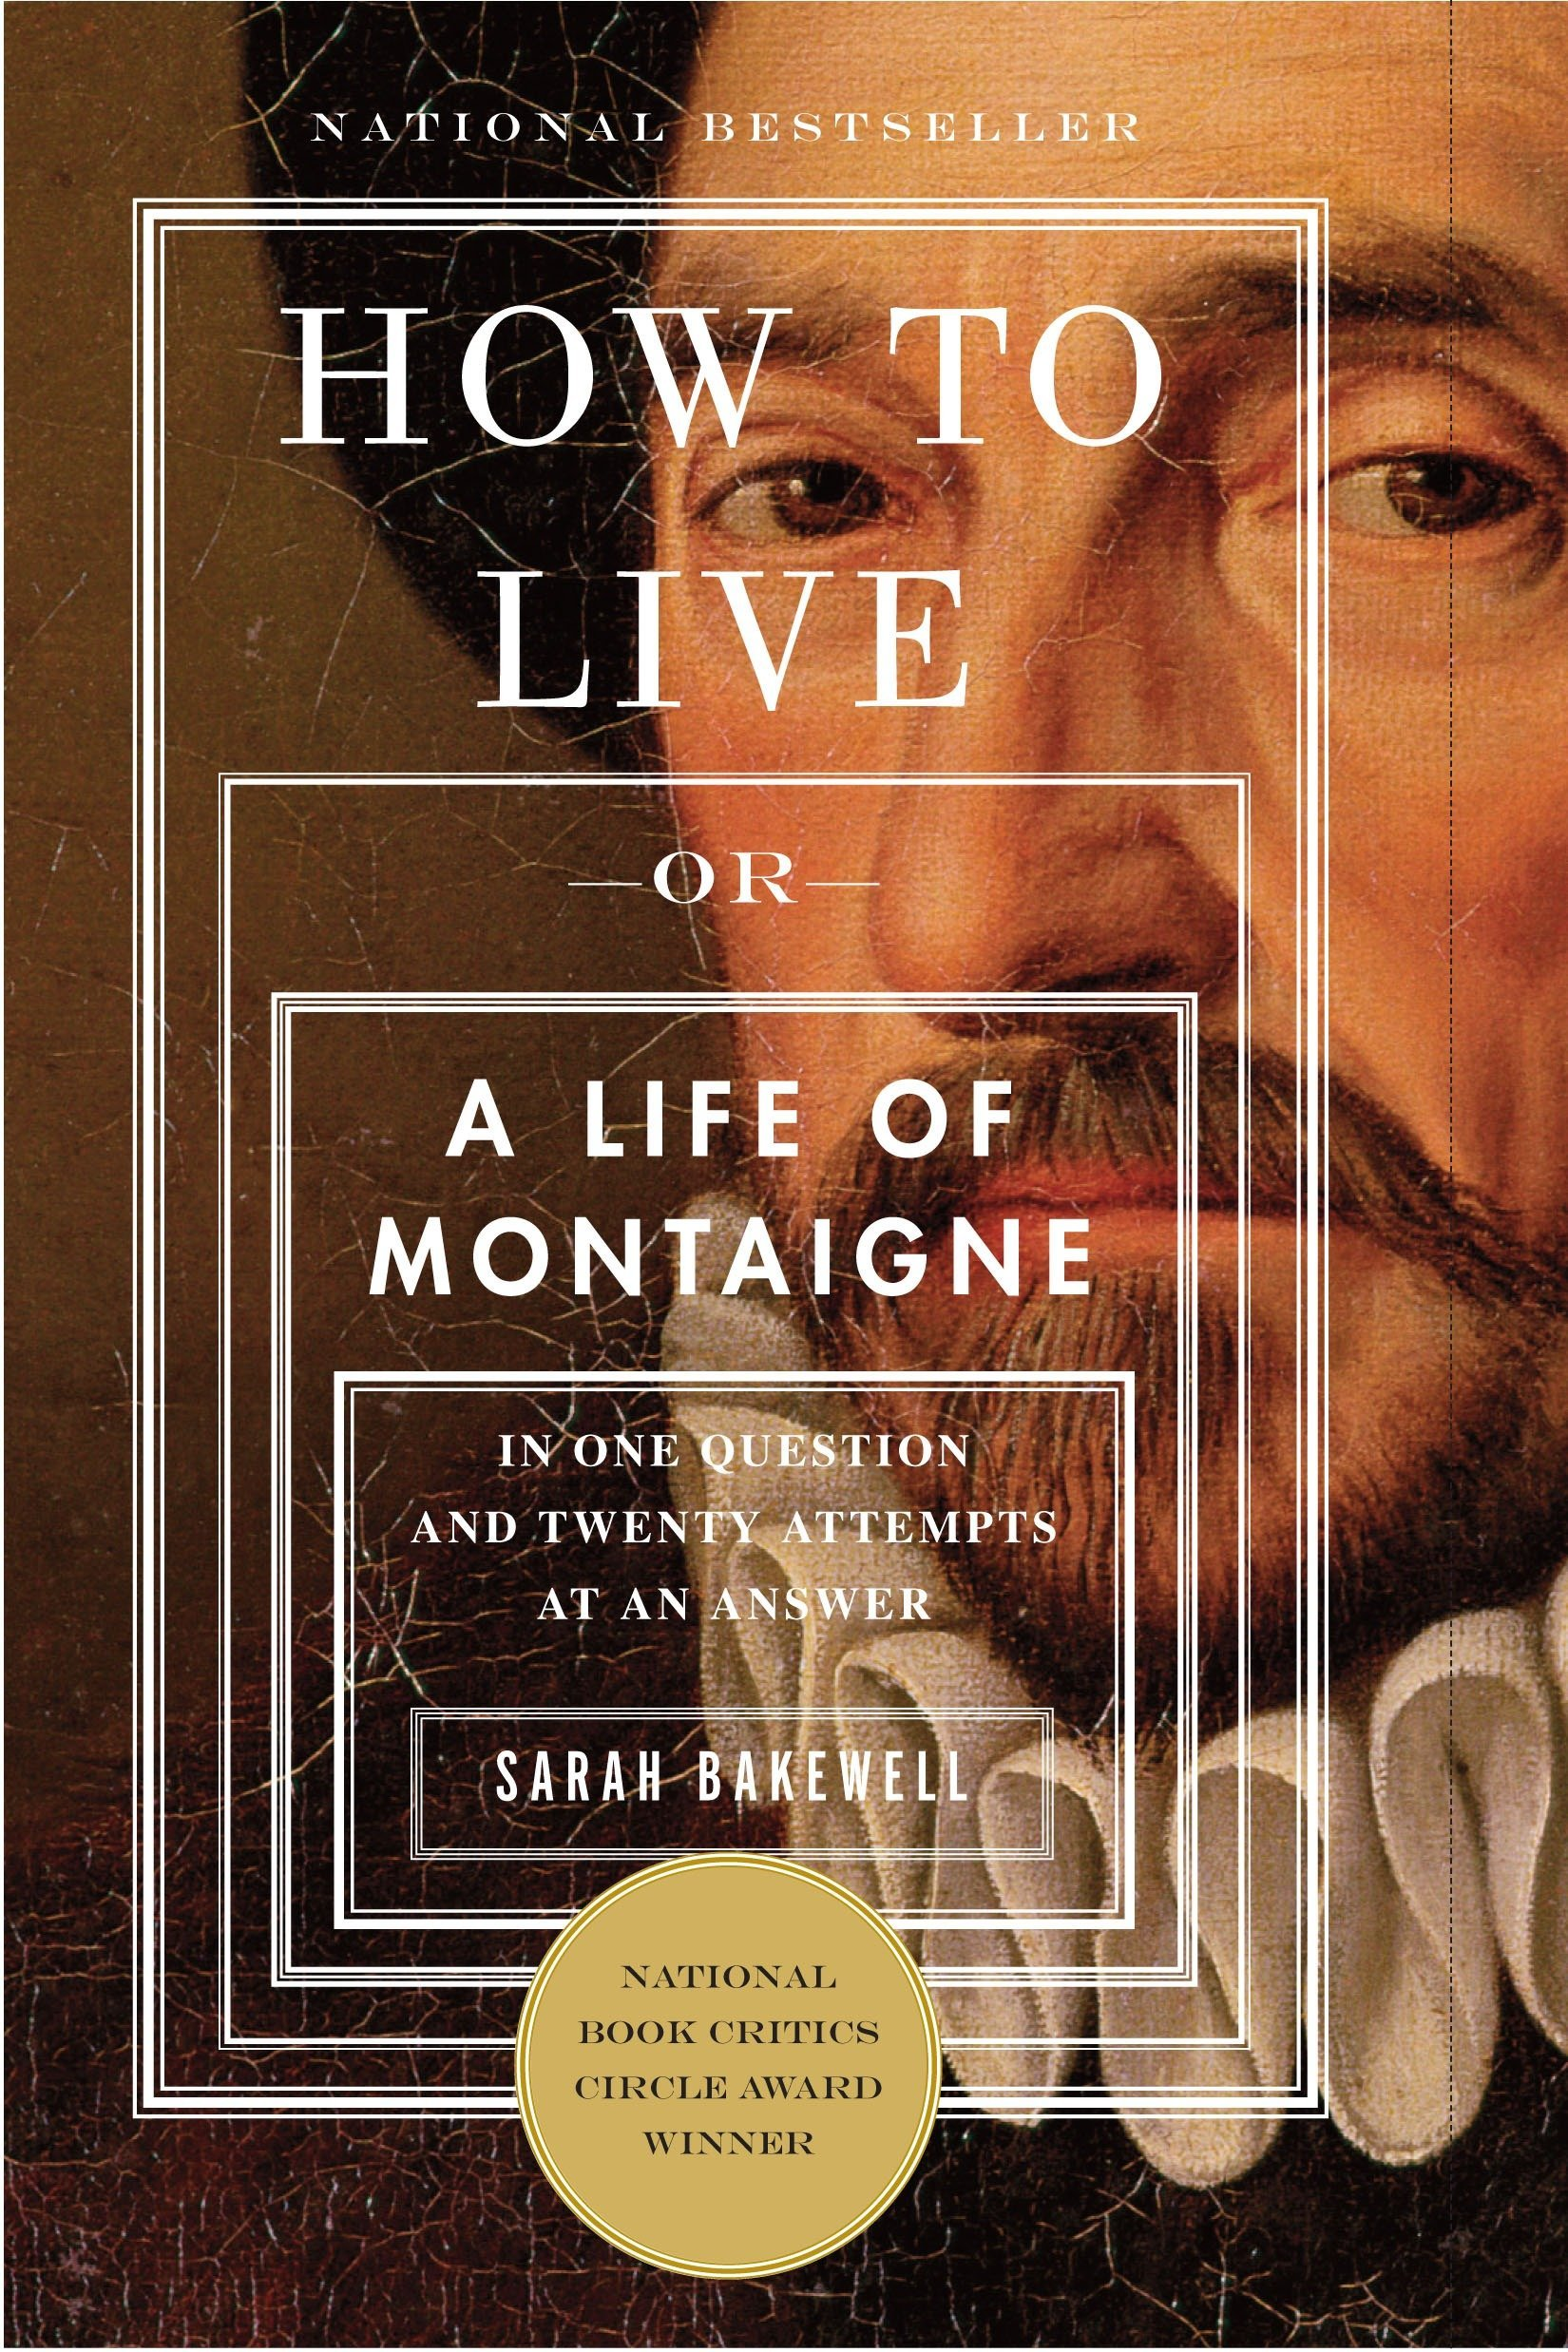 Amazon.com: How to Live: Or A Life of Montaigne in One Question and Twenty  Attempts at an Answer (9781590514832): Bakewell, Sarah: Books